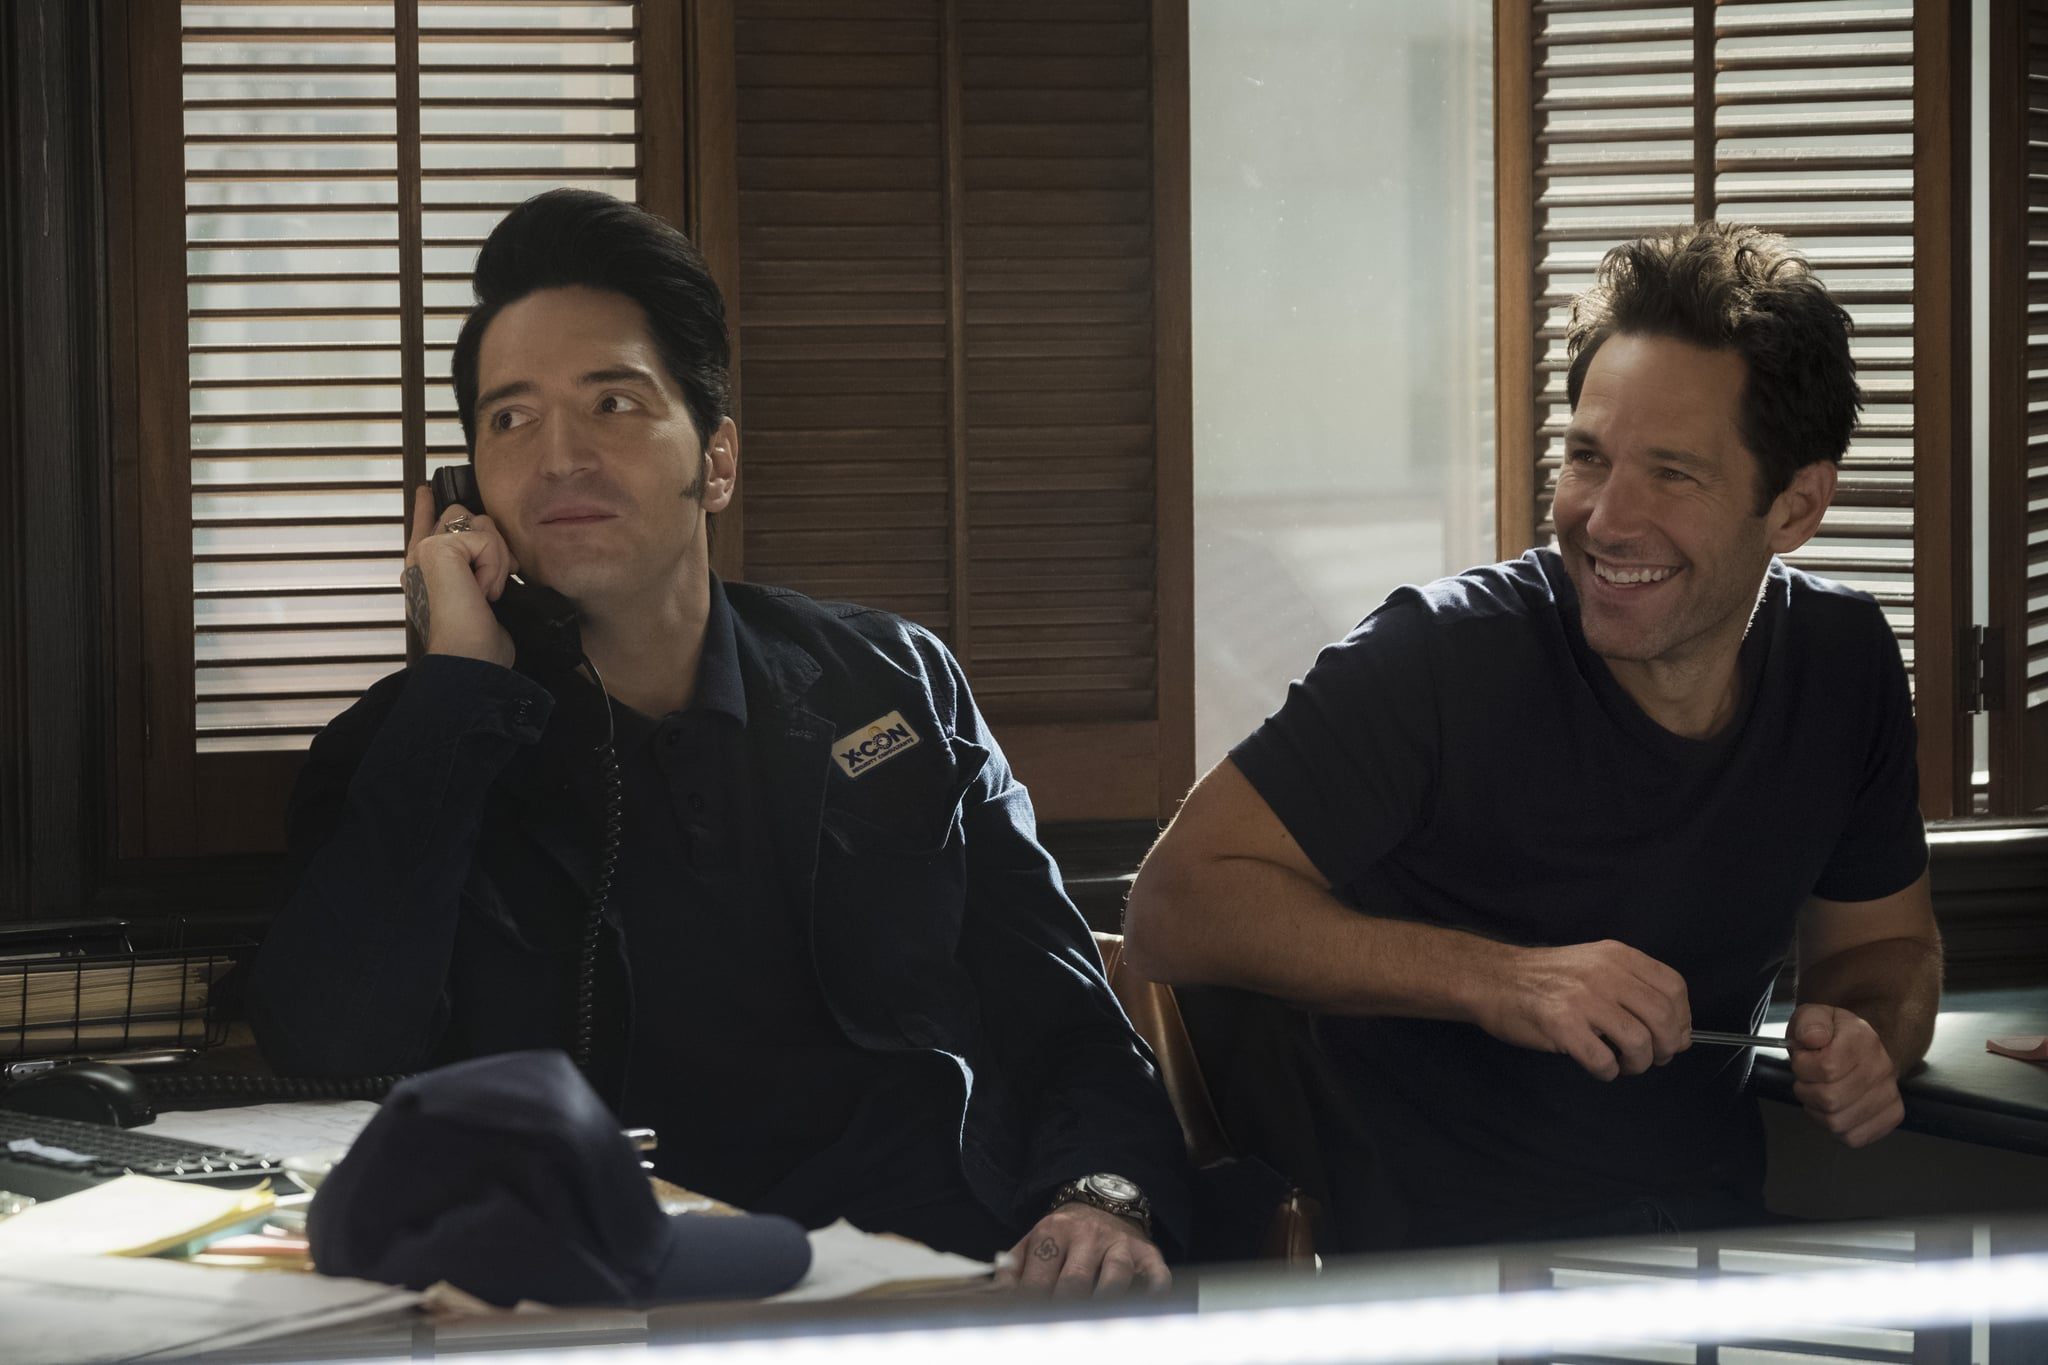 Marvel Studios ANT-MAN AND THE WASP..L to R: Kurt (David Dastmalchian) and Ant-Man/Scott Lang (Paul Rudd) ..Photo: Ben Rothstein..©Marvel Studios 2018